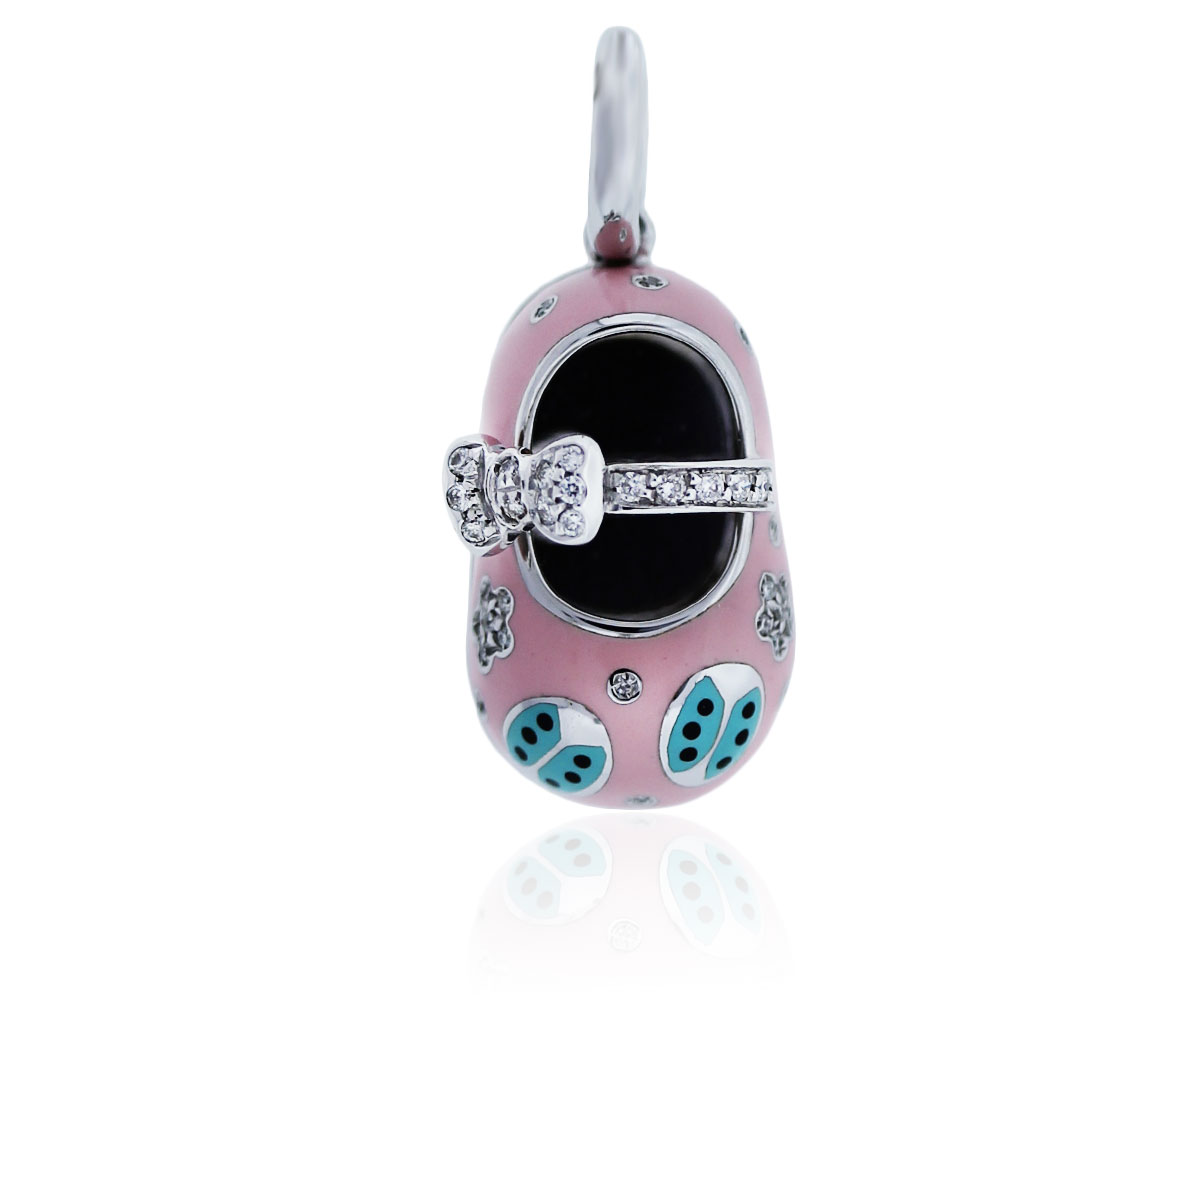 You are viewing this Aaron Basha 18K White Gold Pink Enamel Diamond Baby Shoe Charm!